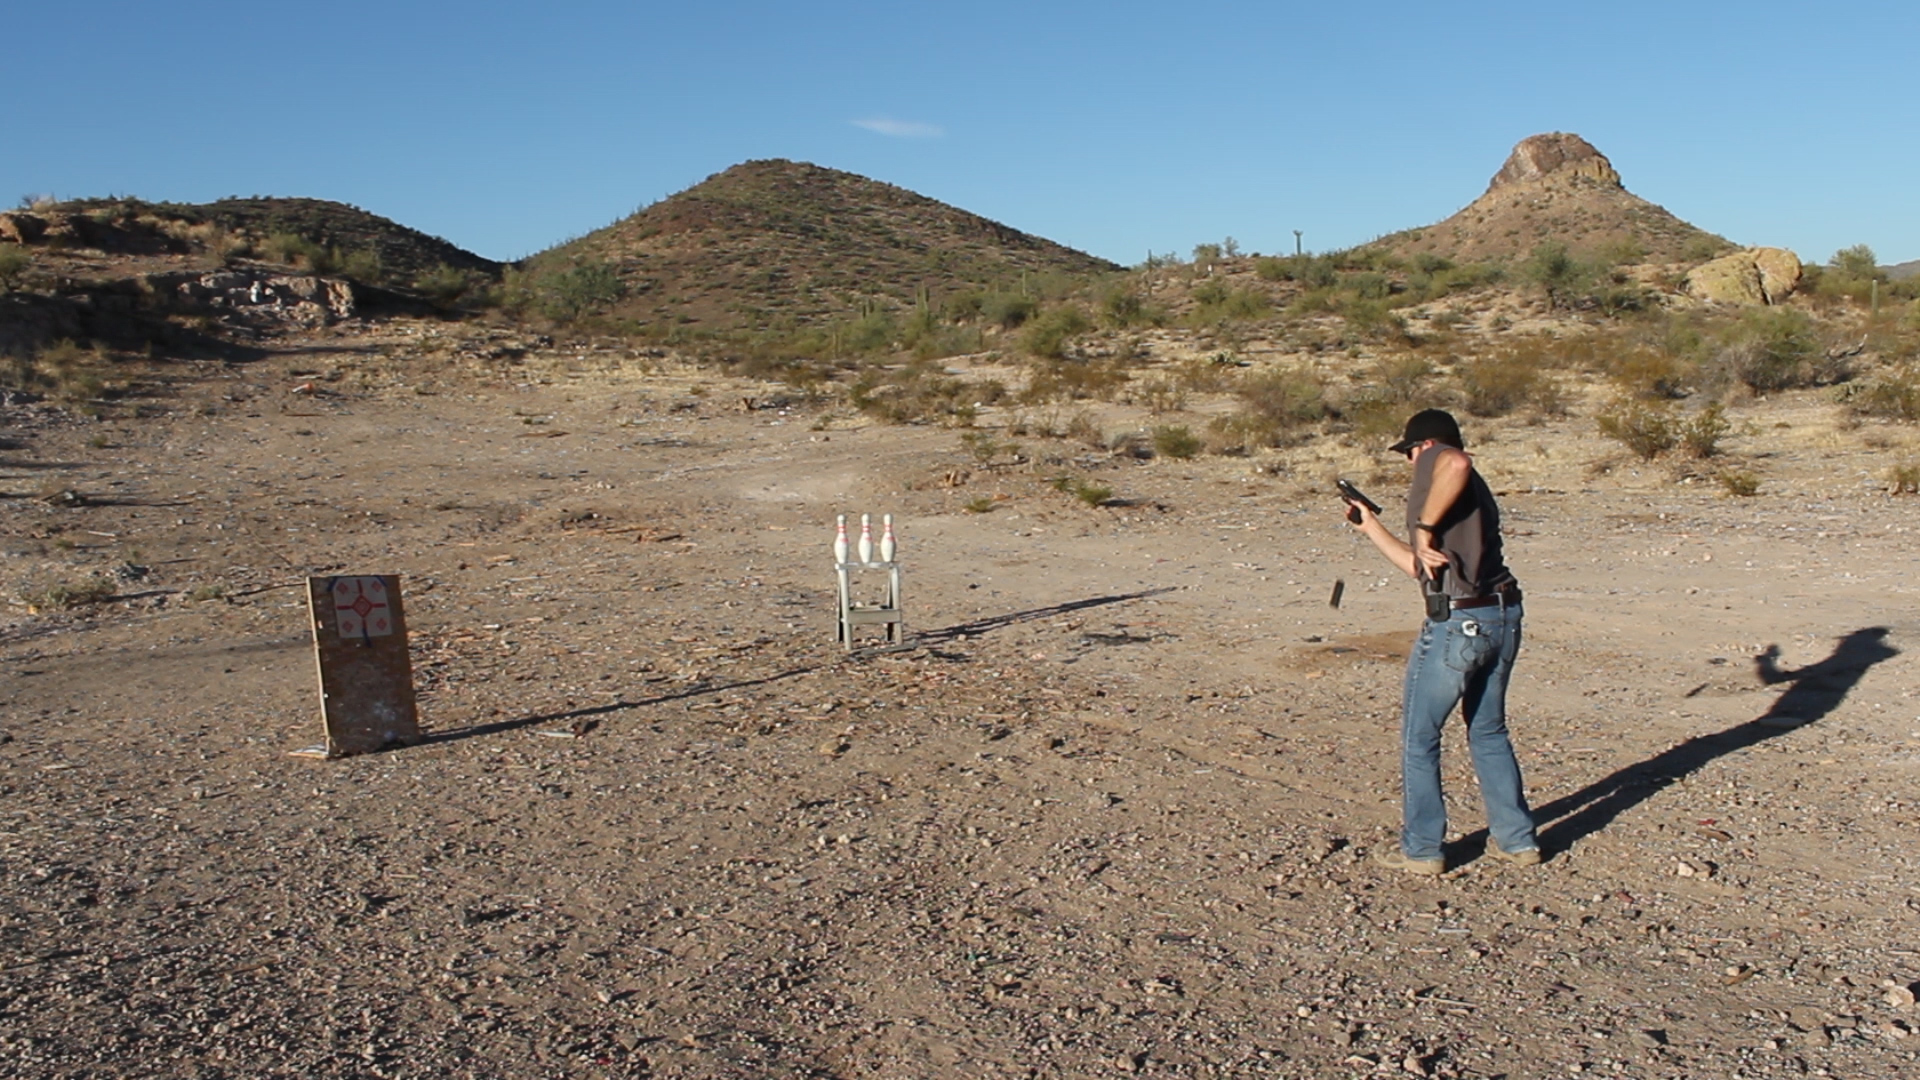 Working on reloads out in the desert...most public ranges don't let you practice this way, so find yourself a good, safe, and LEGAL shooting spot, and make it your home away from home!